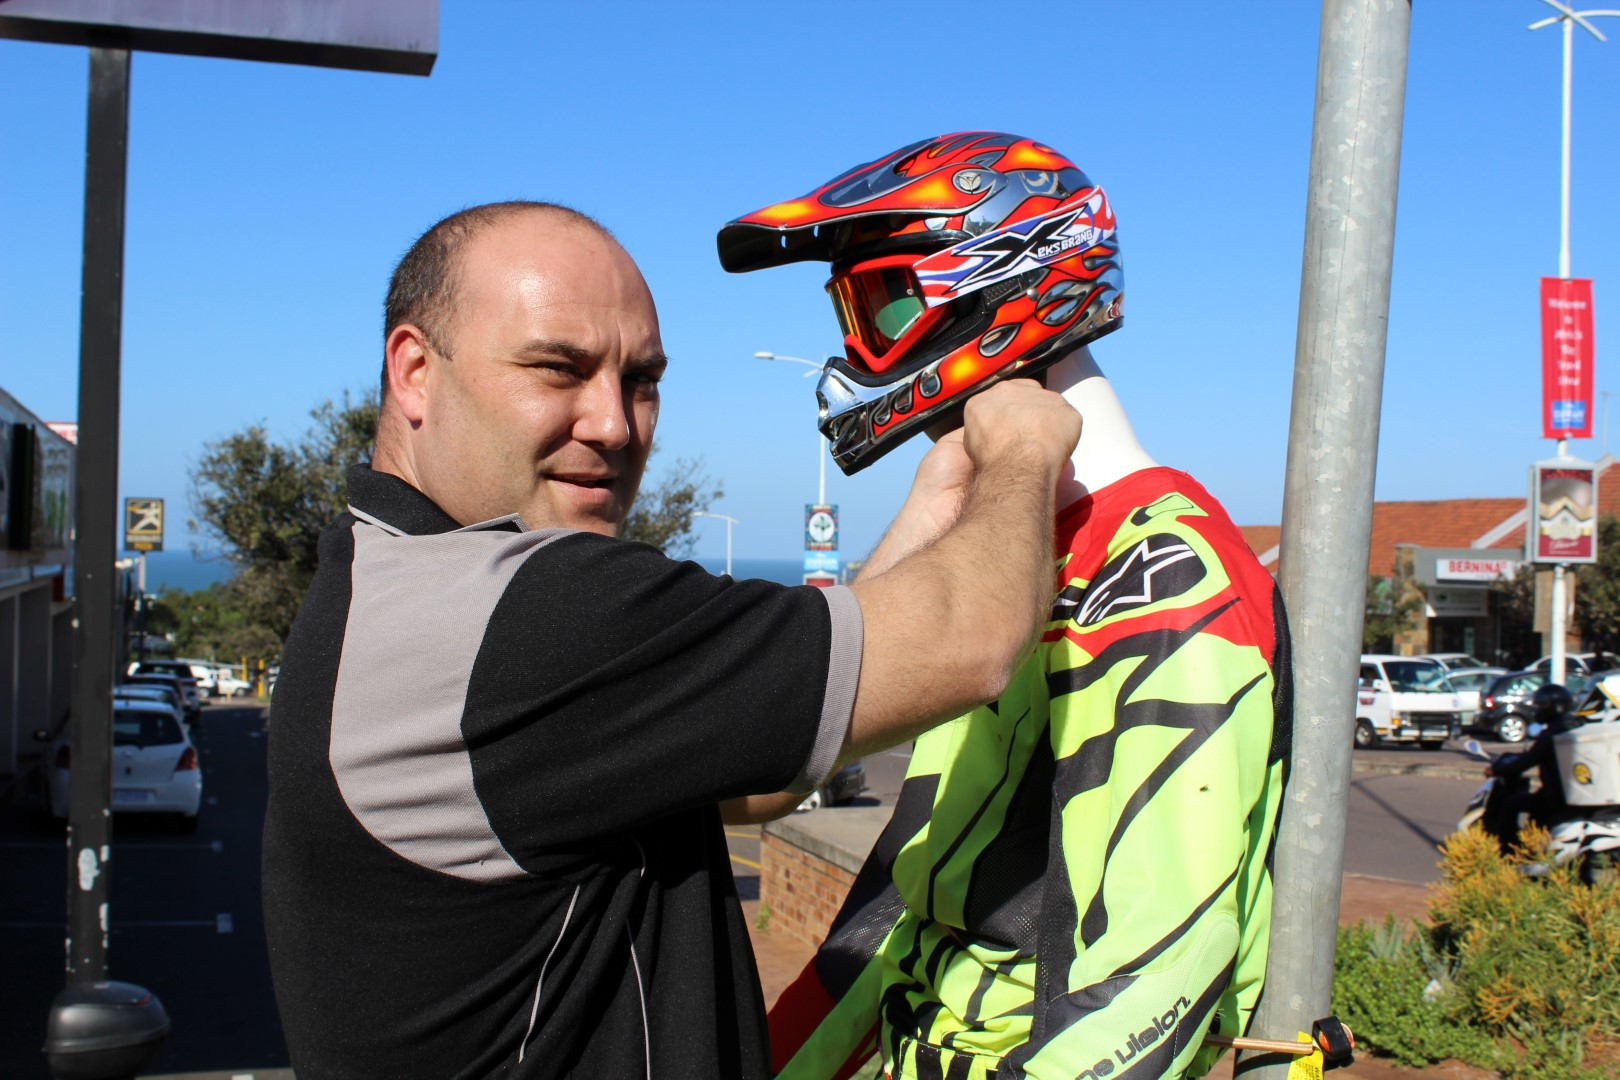 Gareth Moir says he is furious after the theft of Manny's helmet. He now has a replacement which has been strapped tightly to the mannequin.